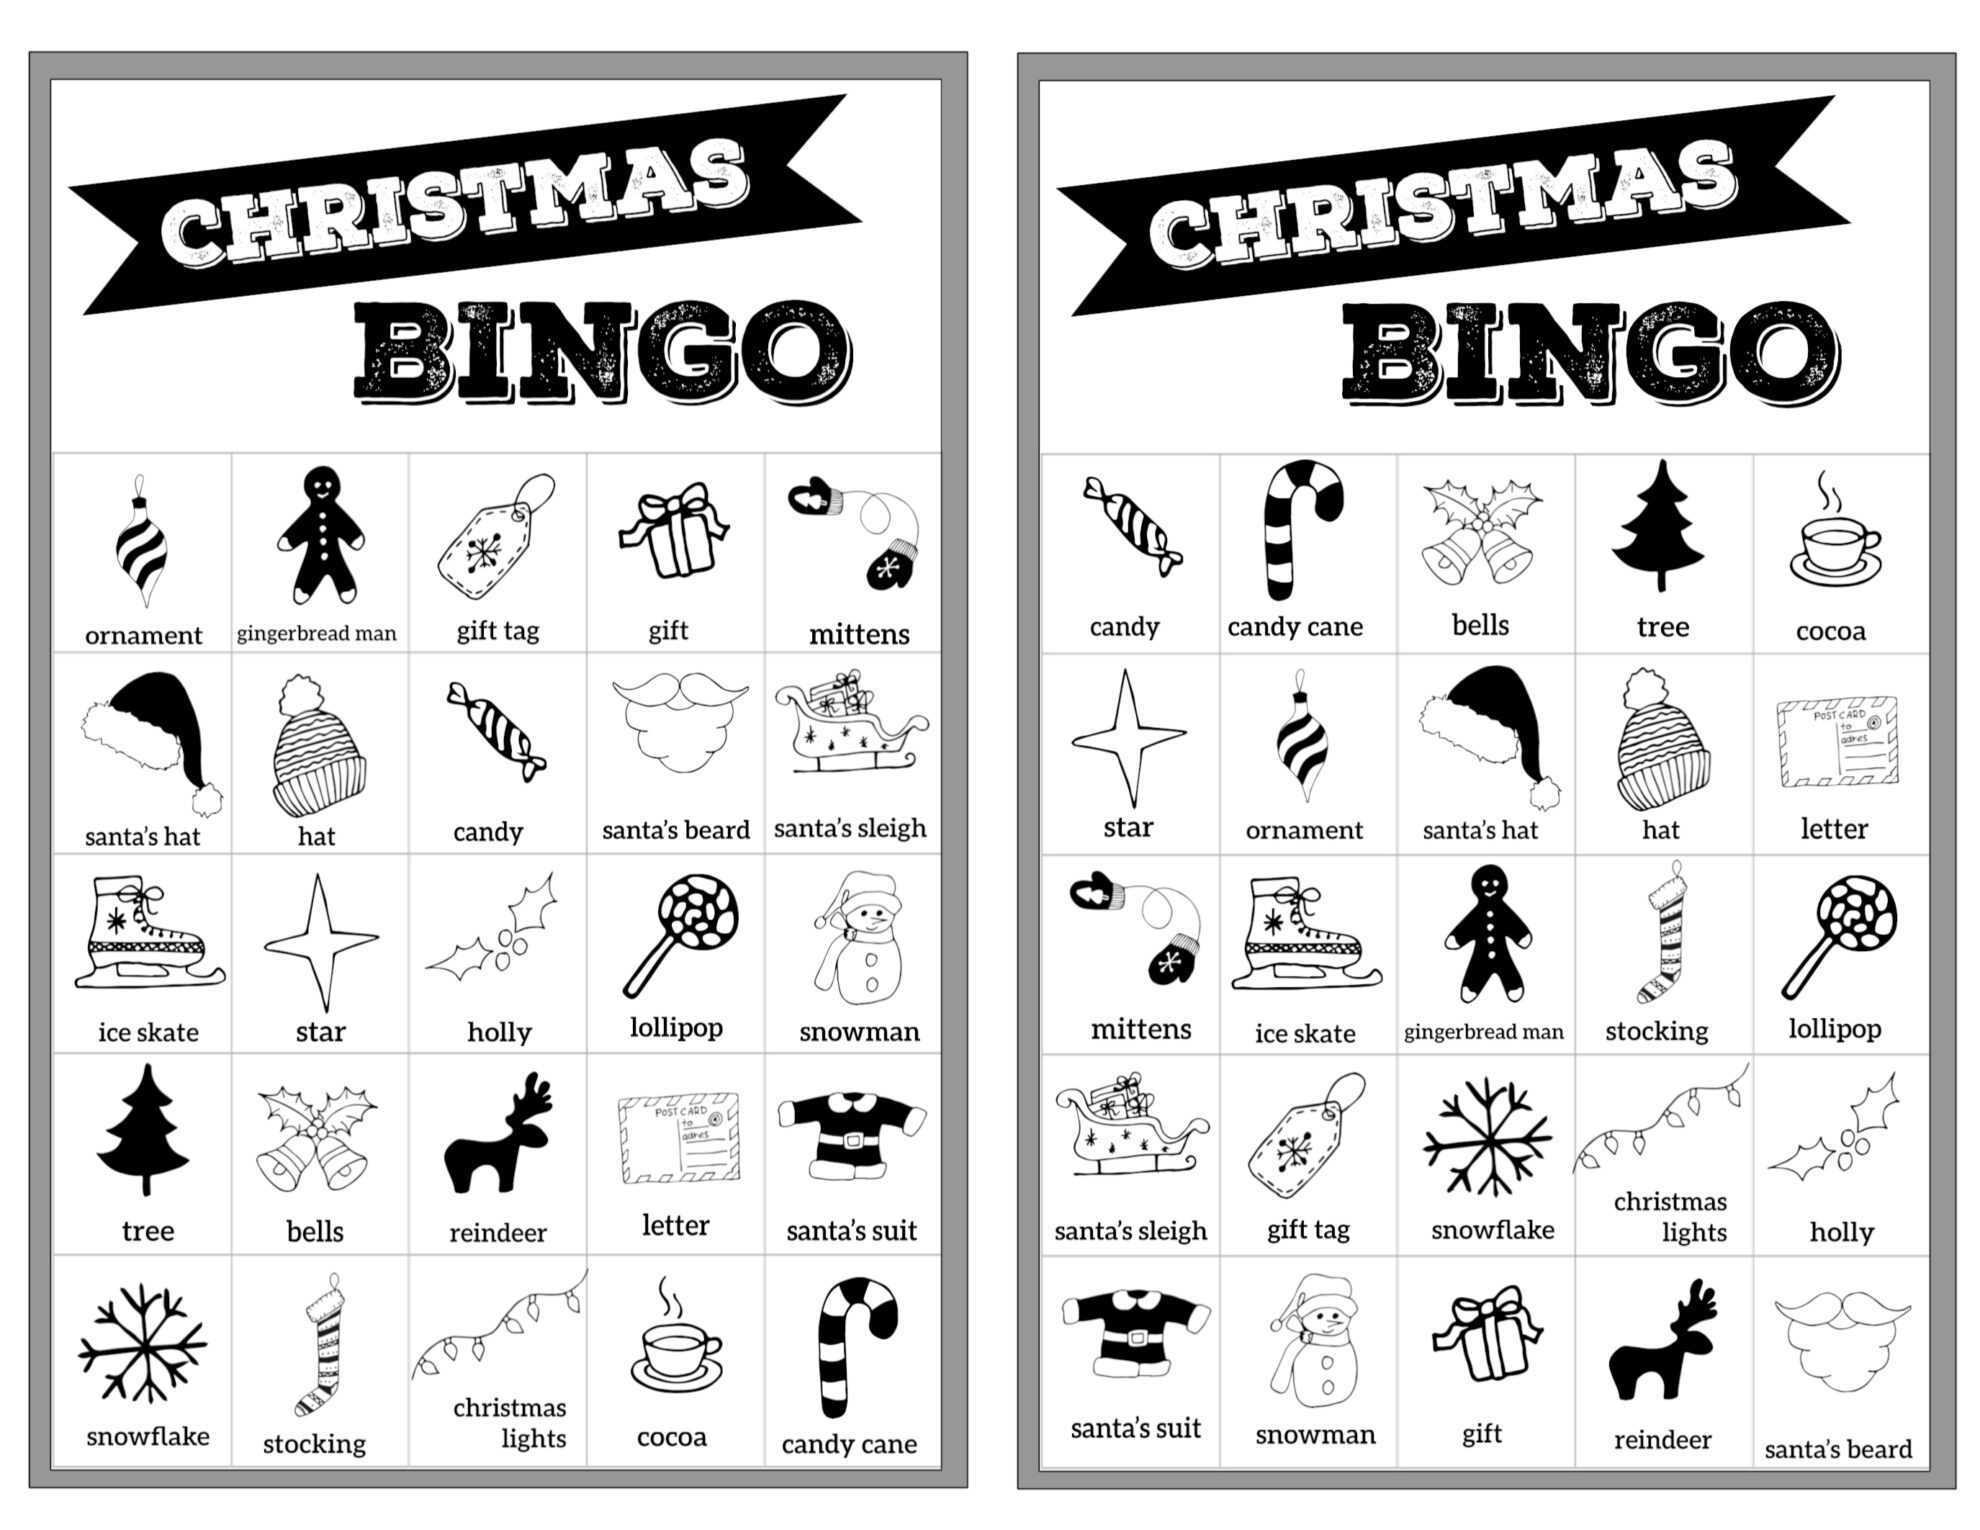 image relating to Free Printable Christmas Bingo Cards identified as Absolutely free Xmas Bingo Printable Playing cards - Paper Path Structure